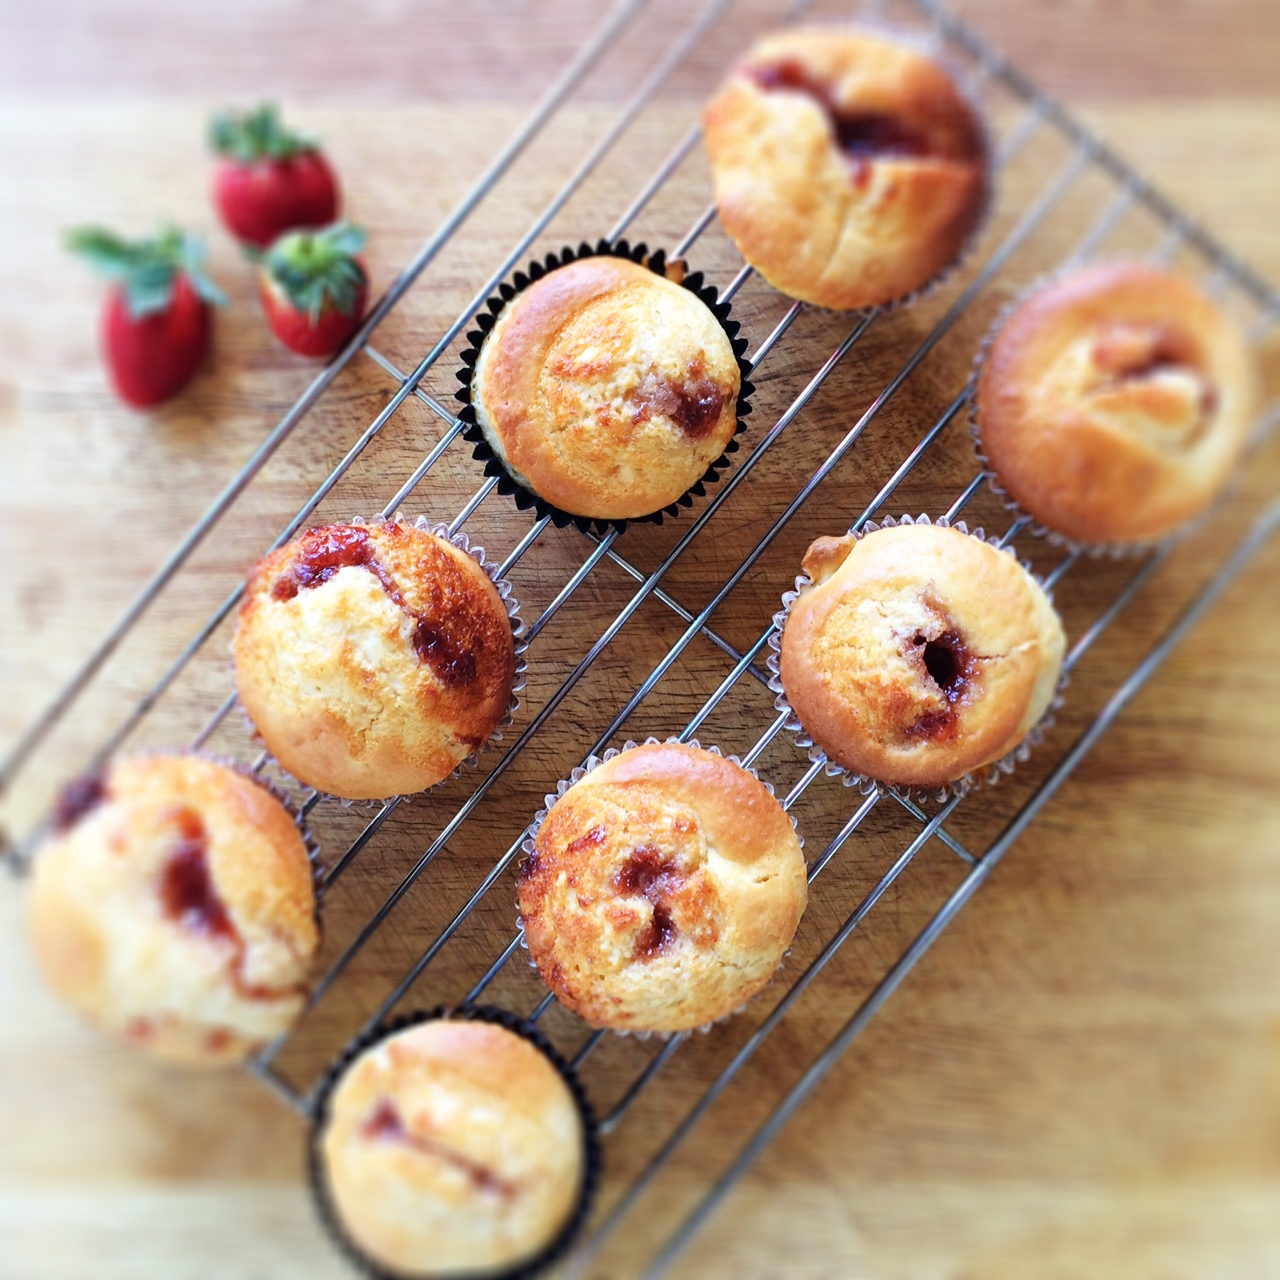 Strawberry Jam Centred White Choc Chip Muffins